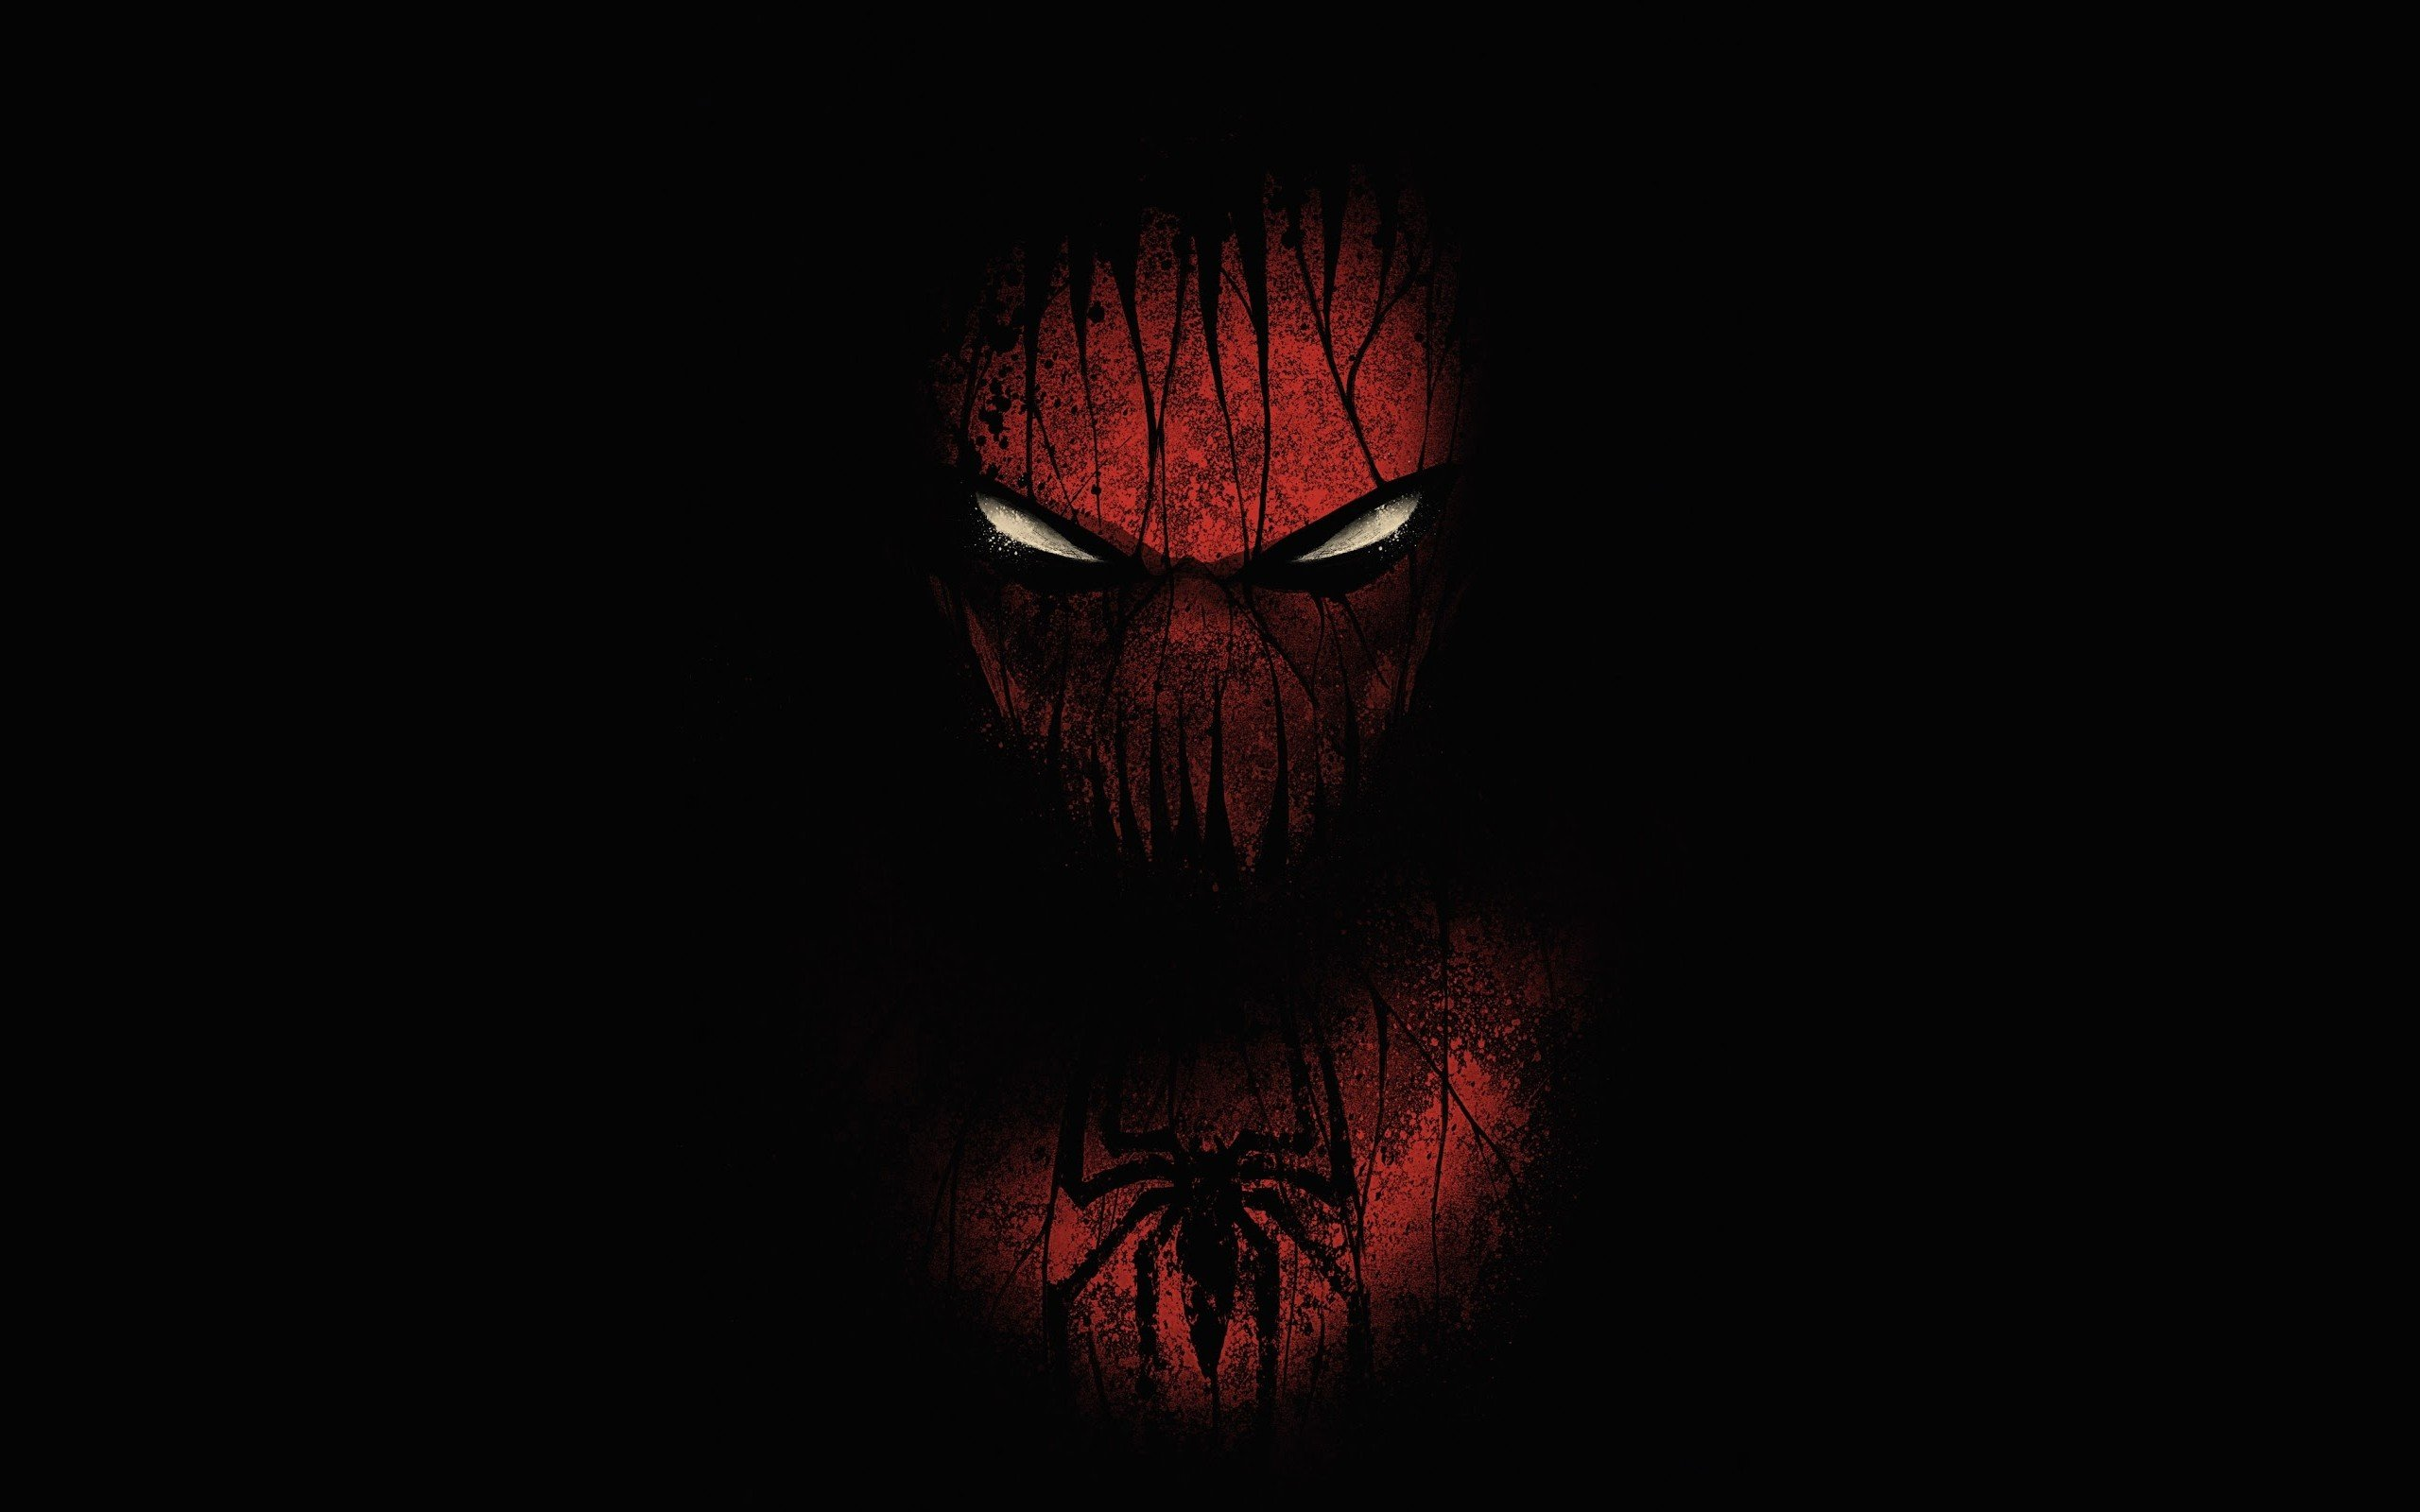 750x1334 Red Black Spiderman Iphone 6 Iphone 6s Iphone 7 Hd 4k